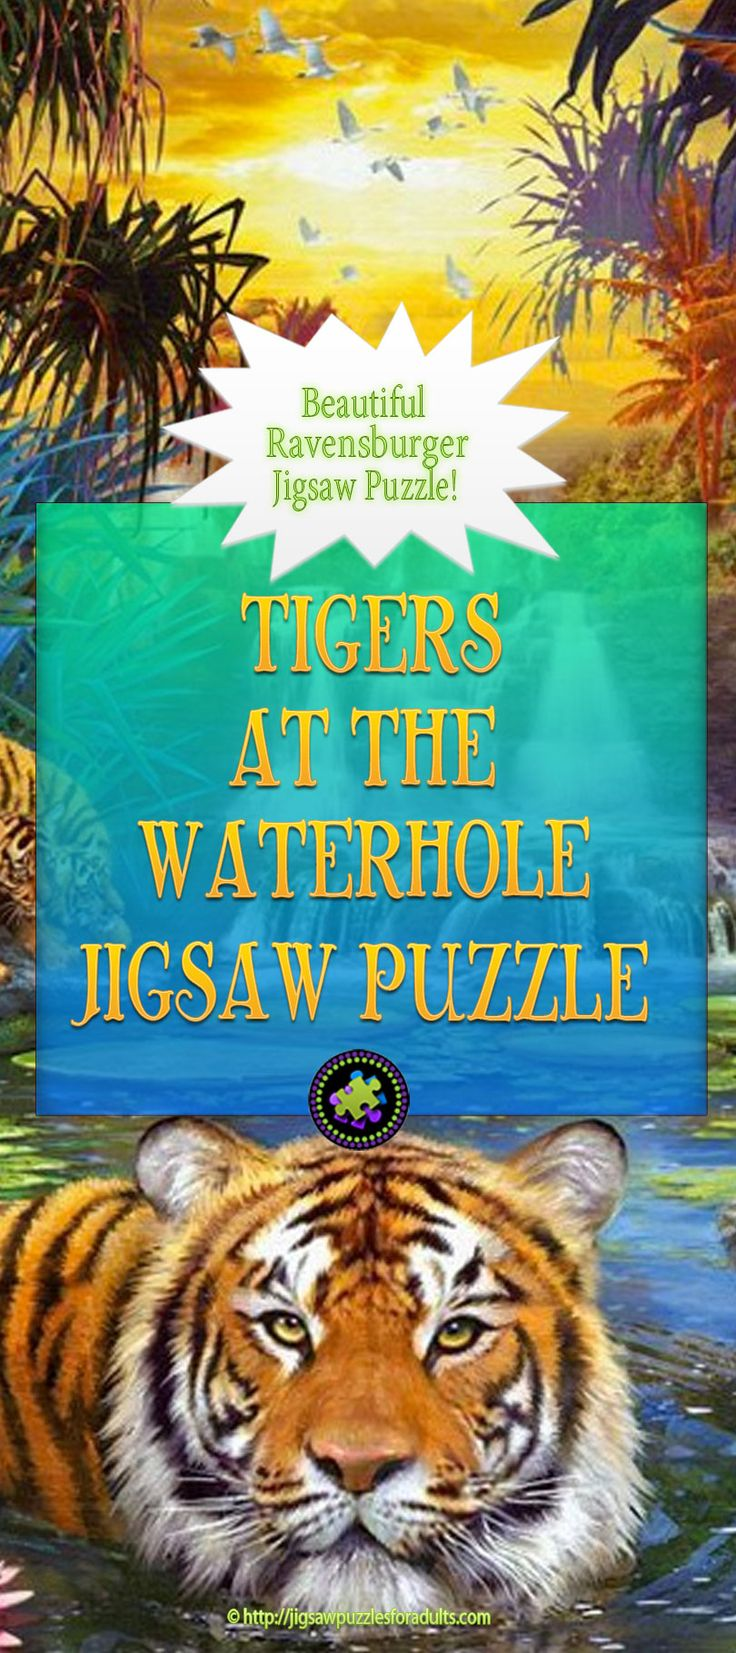 If you love Tigers these beautiful Ravensburger jigsaw puzzles for adults are not only FUN to work on but will challenge your mind and entertain you, too. Tigers At The Waterhole Jigsaw Puzzles are made of high quality puzzle pieces.